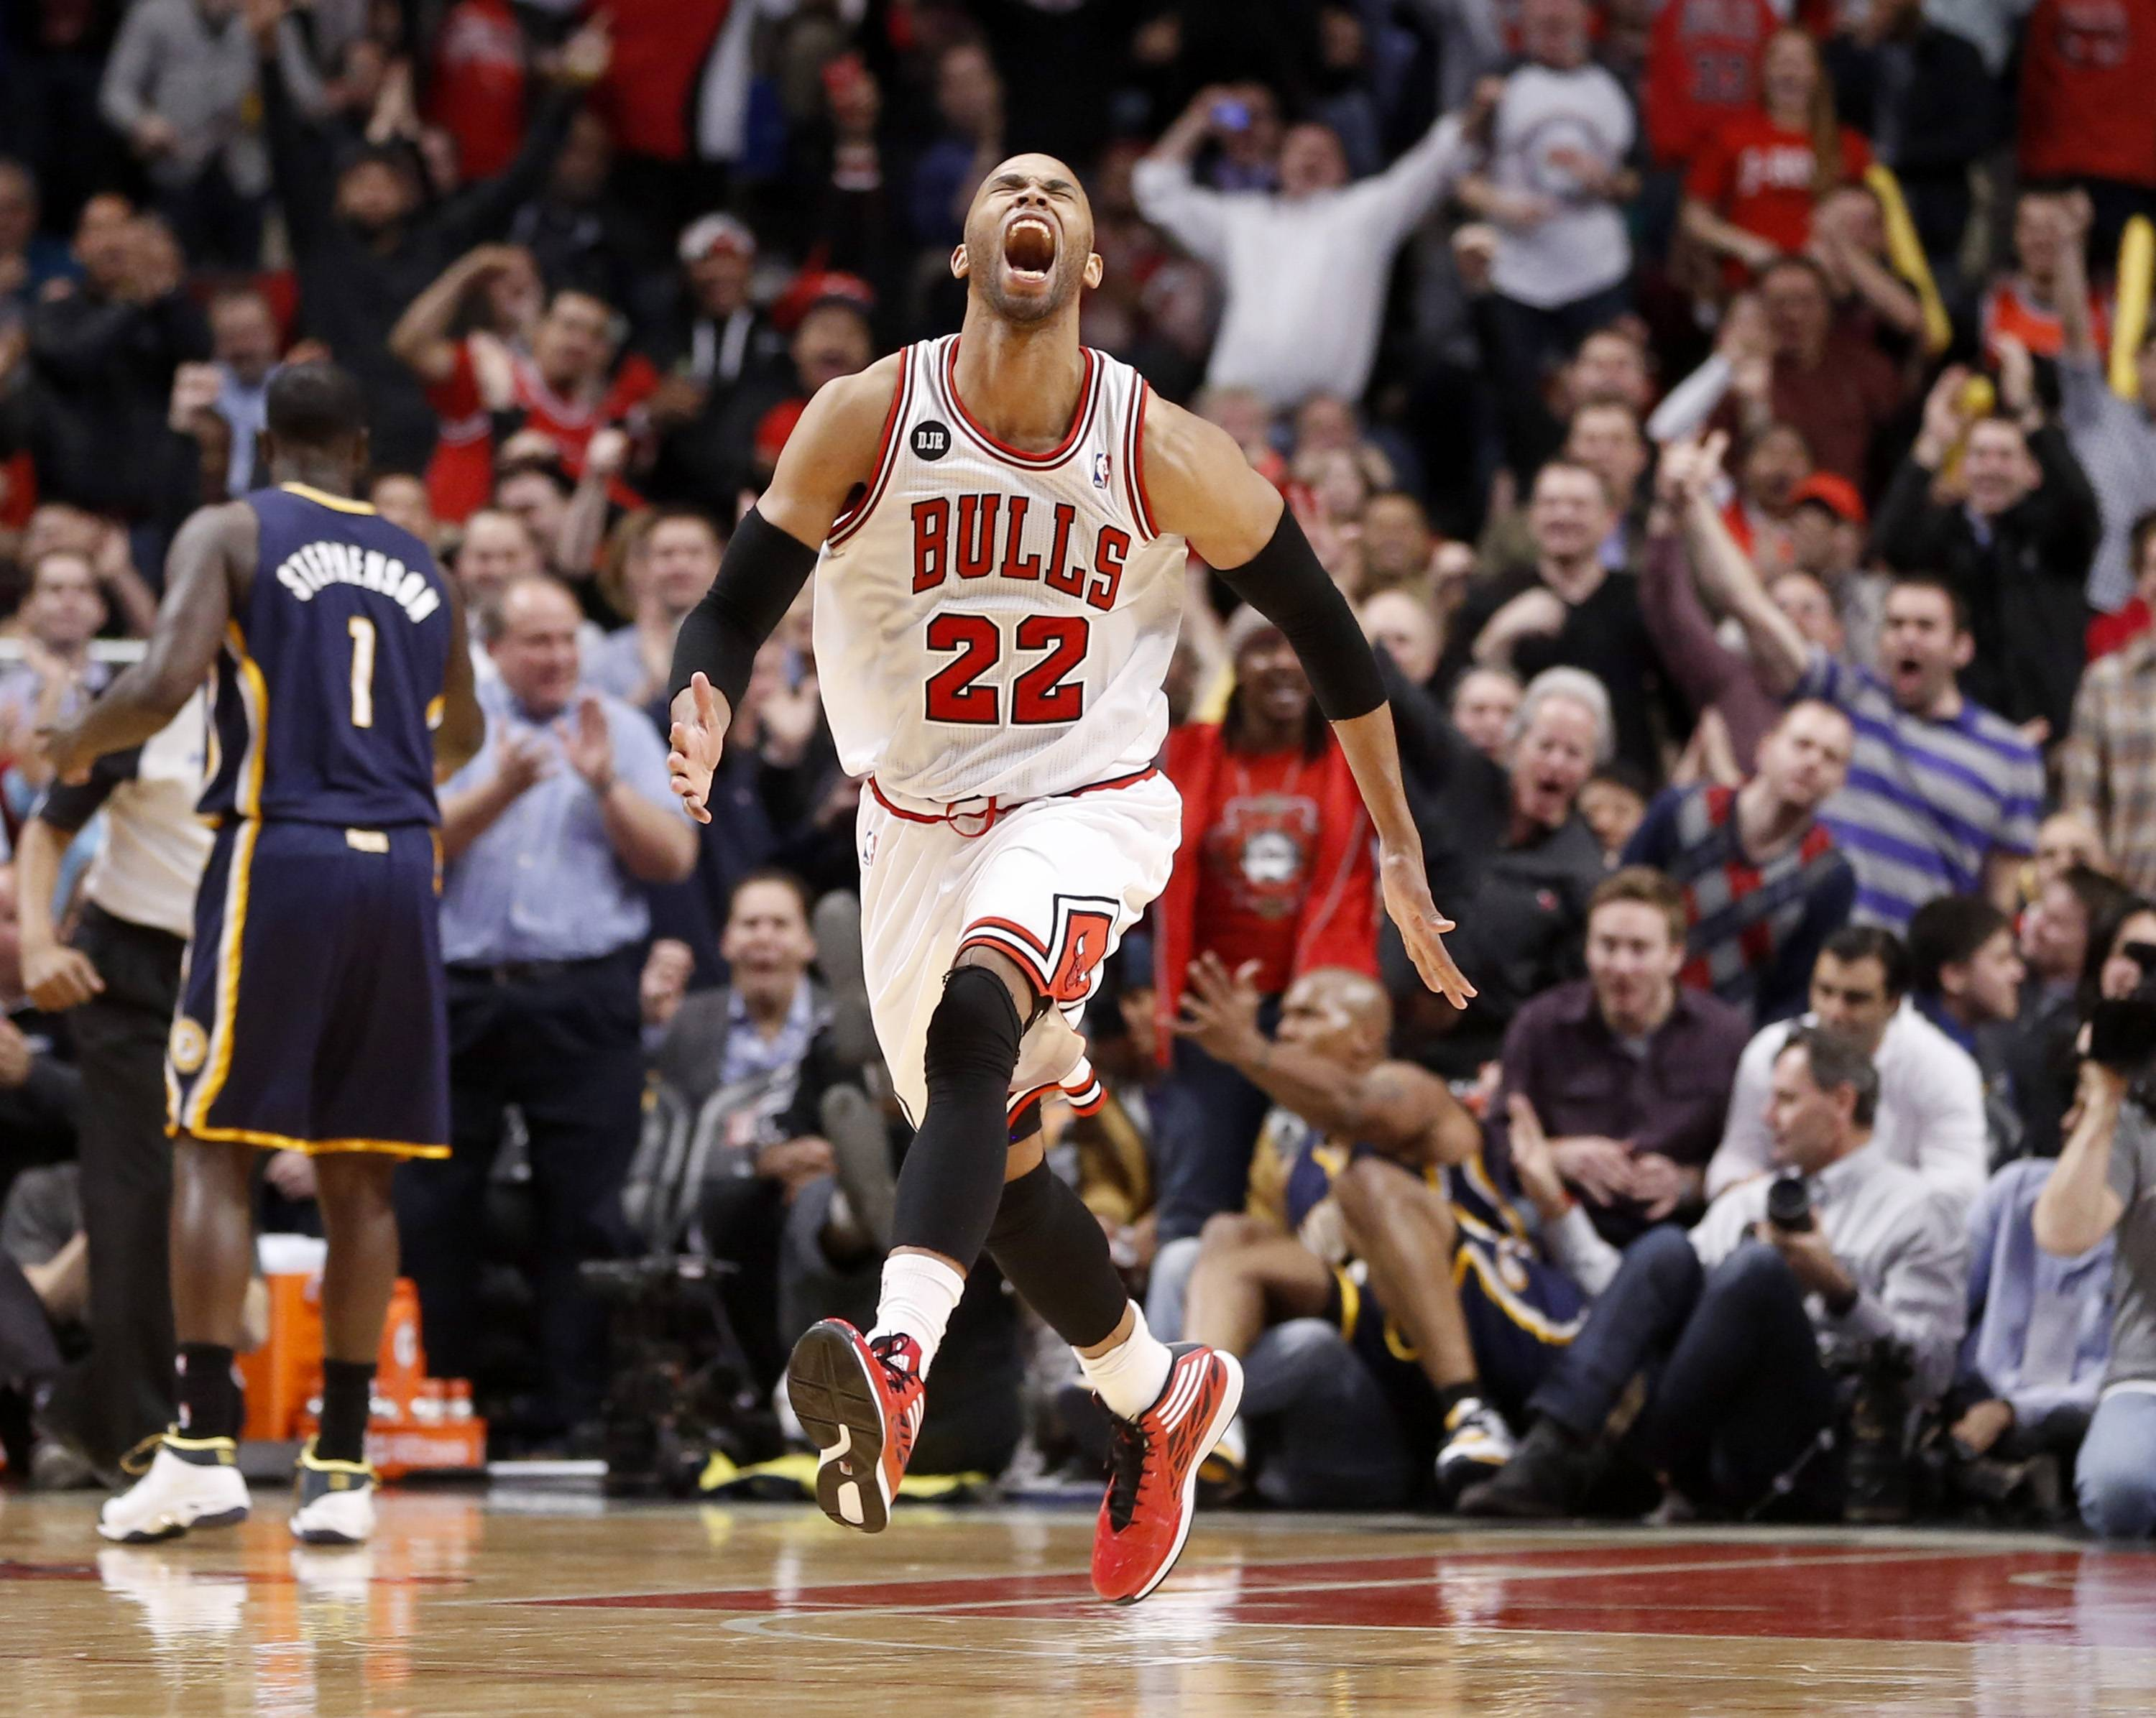 Bulls' Gibson bounces back in a big way